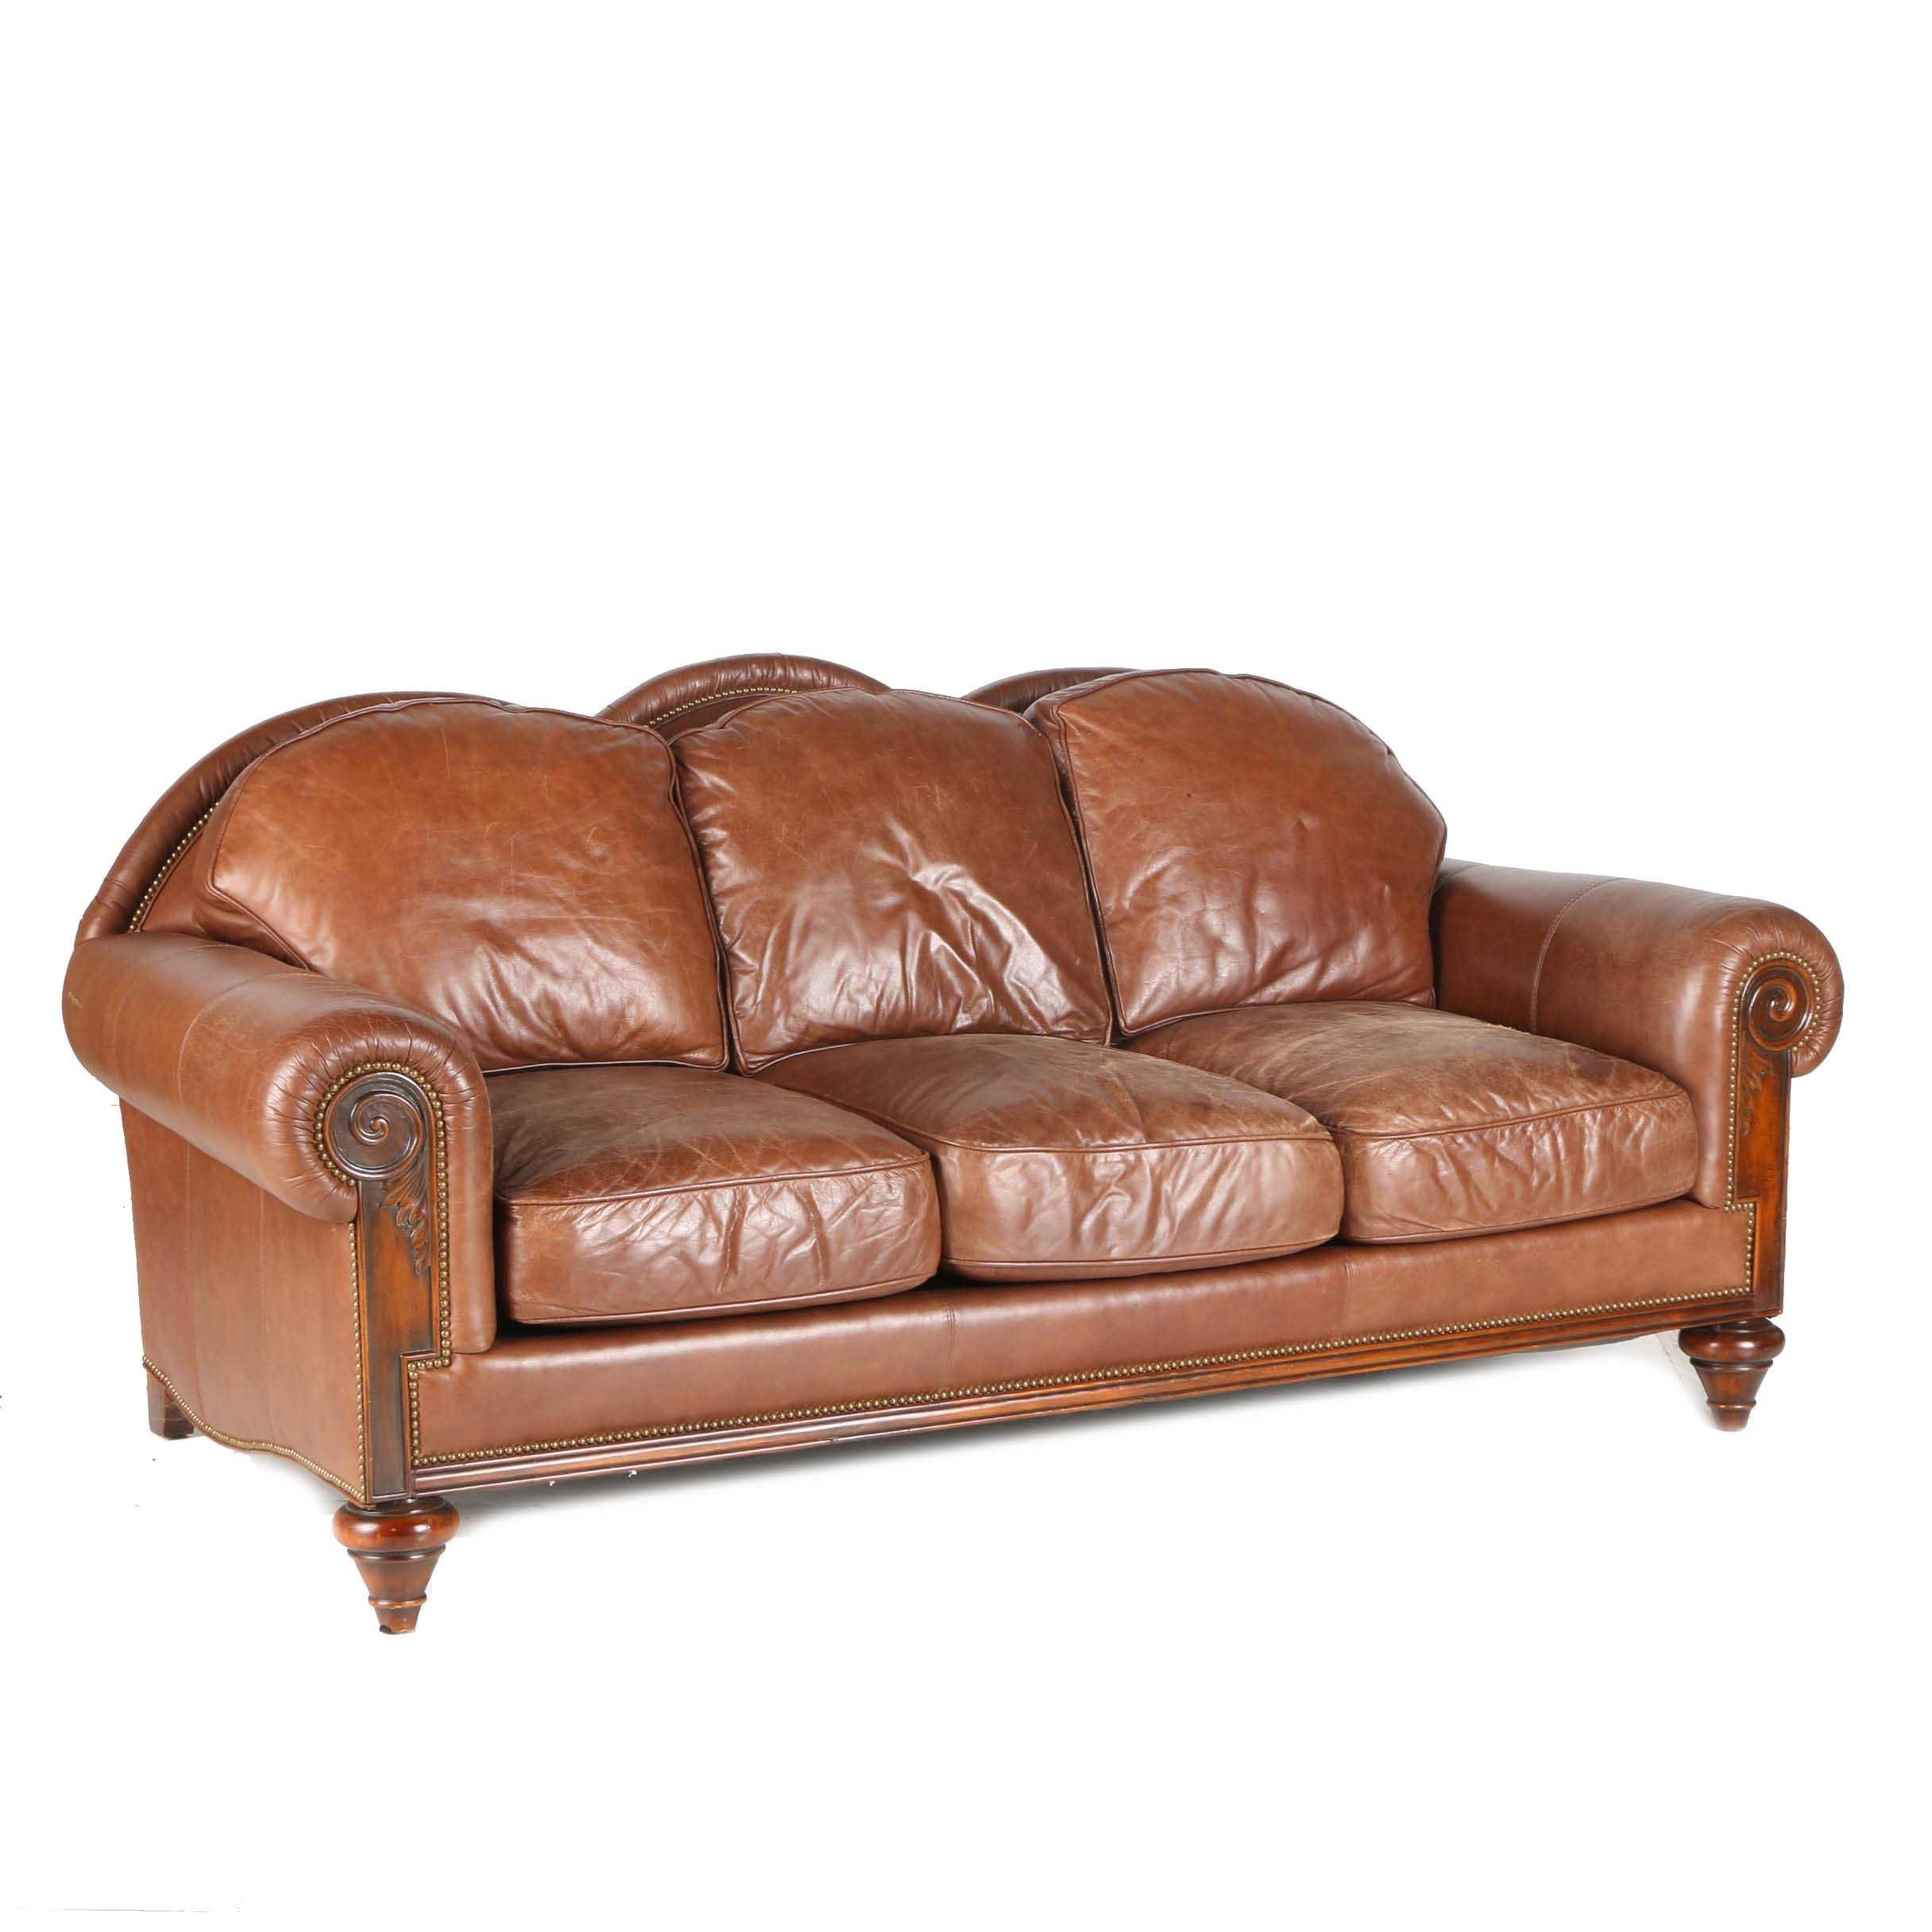 Brown Leather Sofa by Whittemore-Sherrill Limited